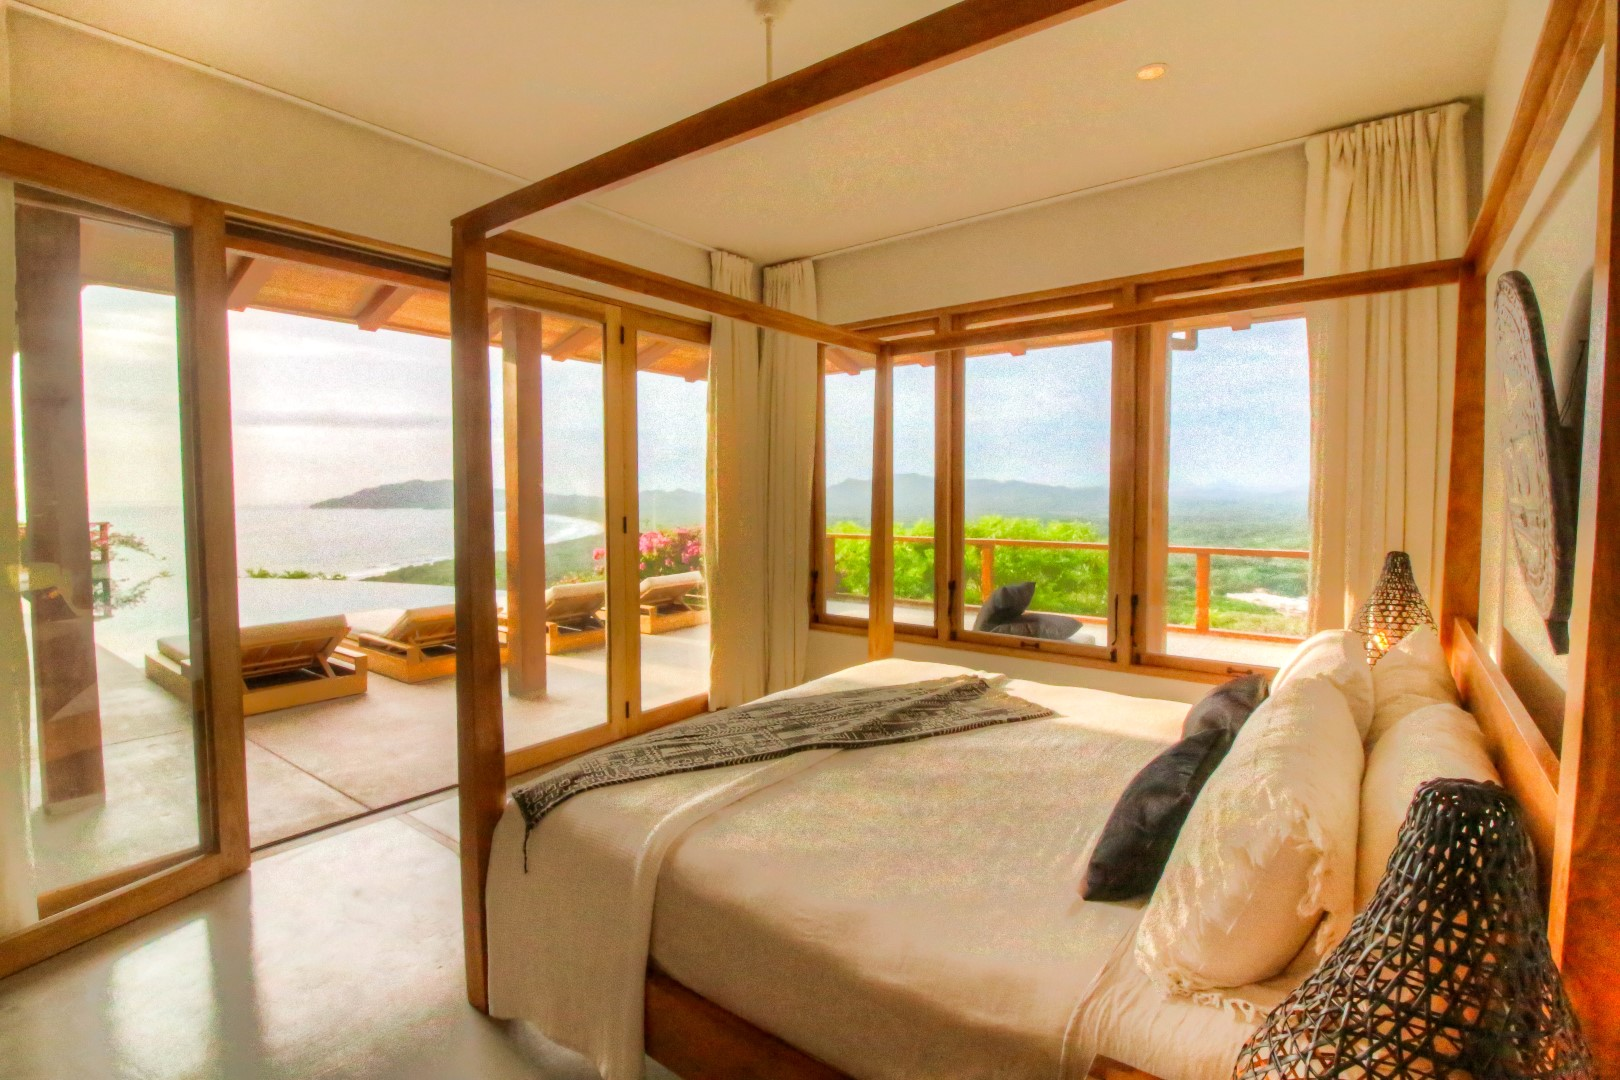 The best views right from your bedroom